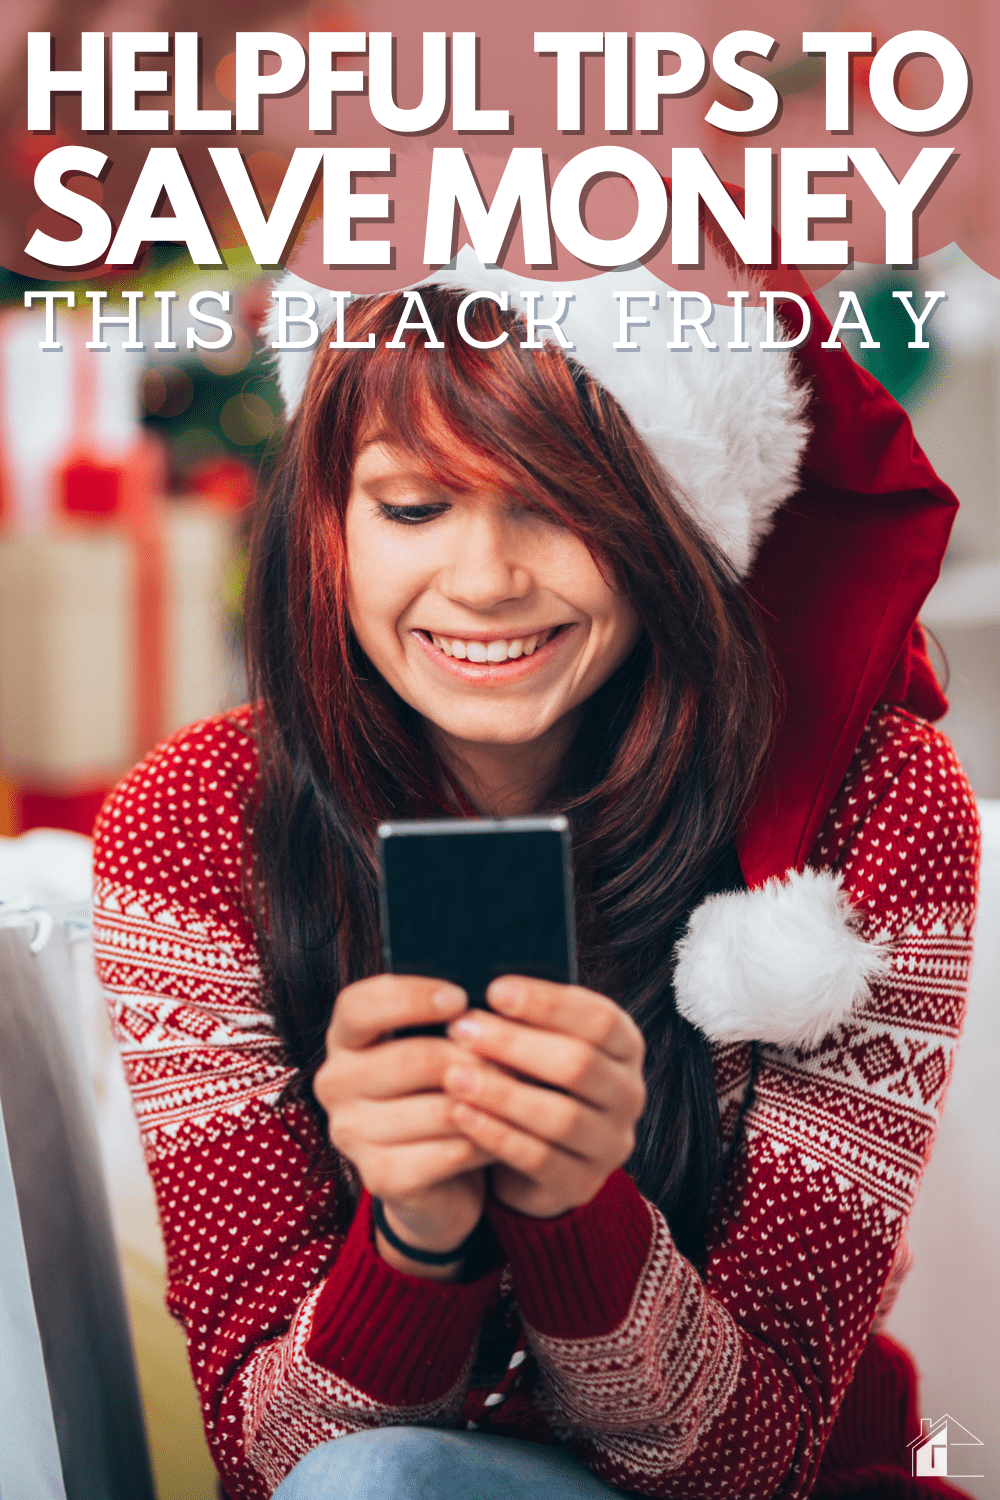 Black Friday shopping this year? Learn what to expect this year and how 2021 changes might affect your shopping experience this year! via @mystayathome